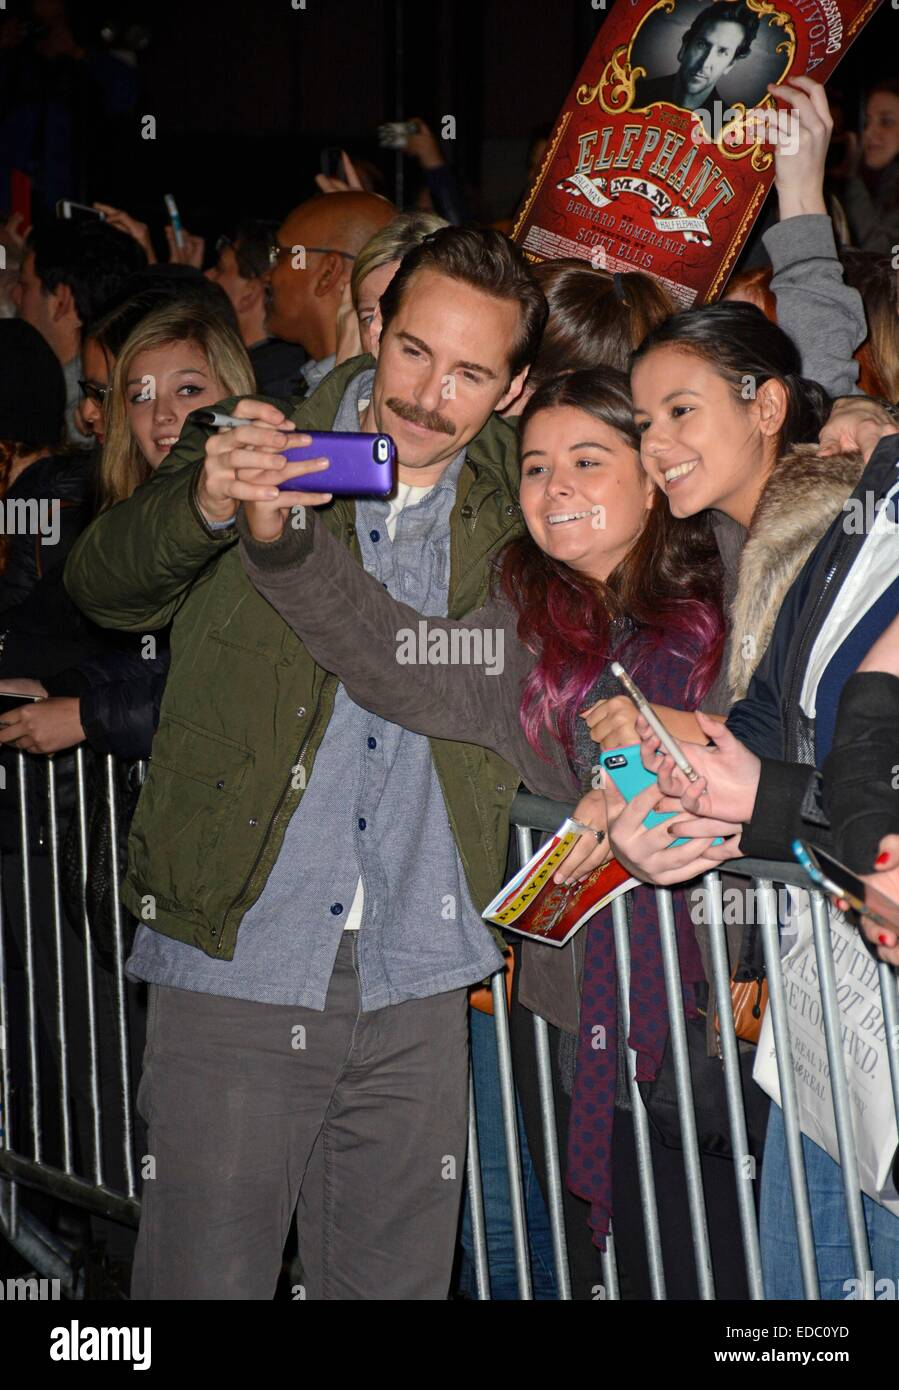 Alessandro Nivola out and about for Celebrity Candids - SUN, , New York, NY January 4, 2015. Photo By: Derek Storm/Everett - Stock Image